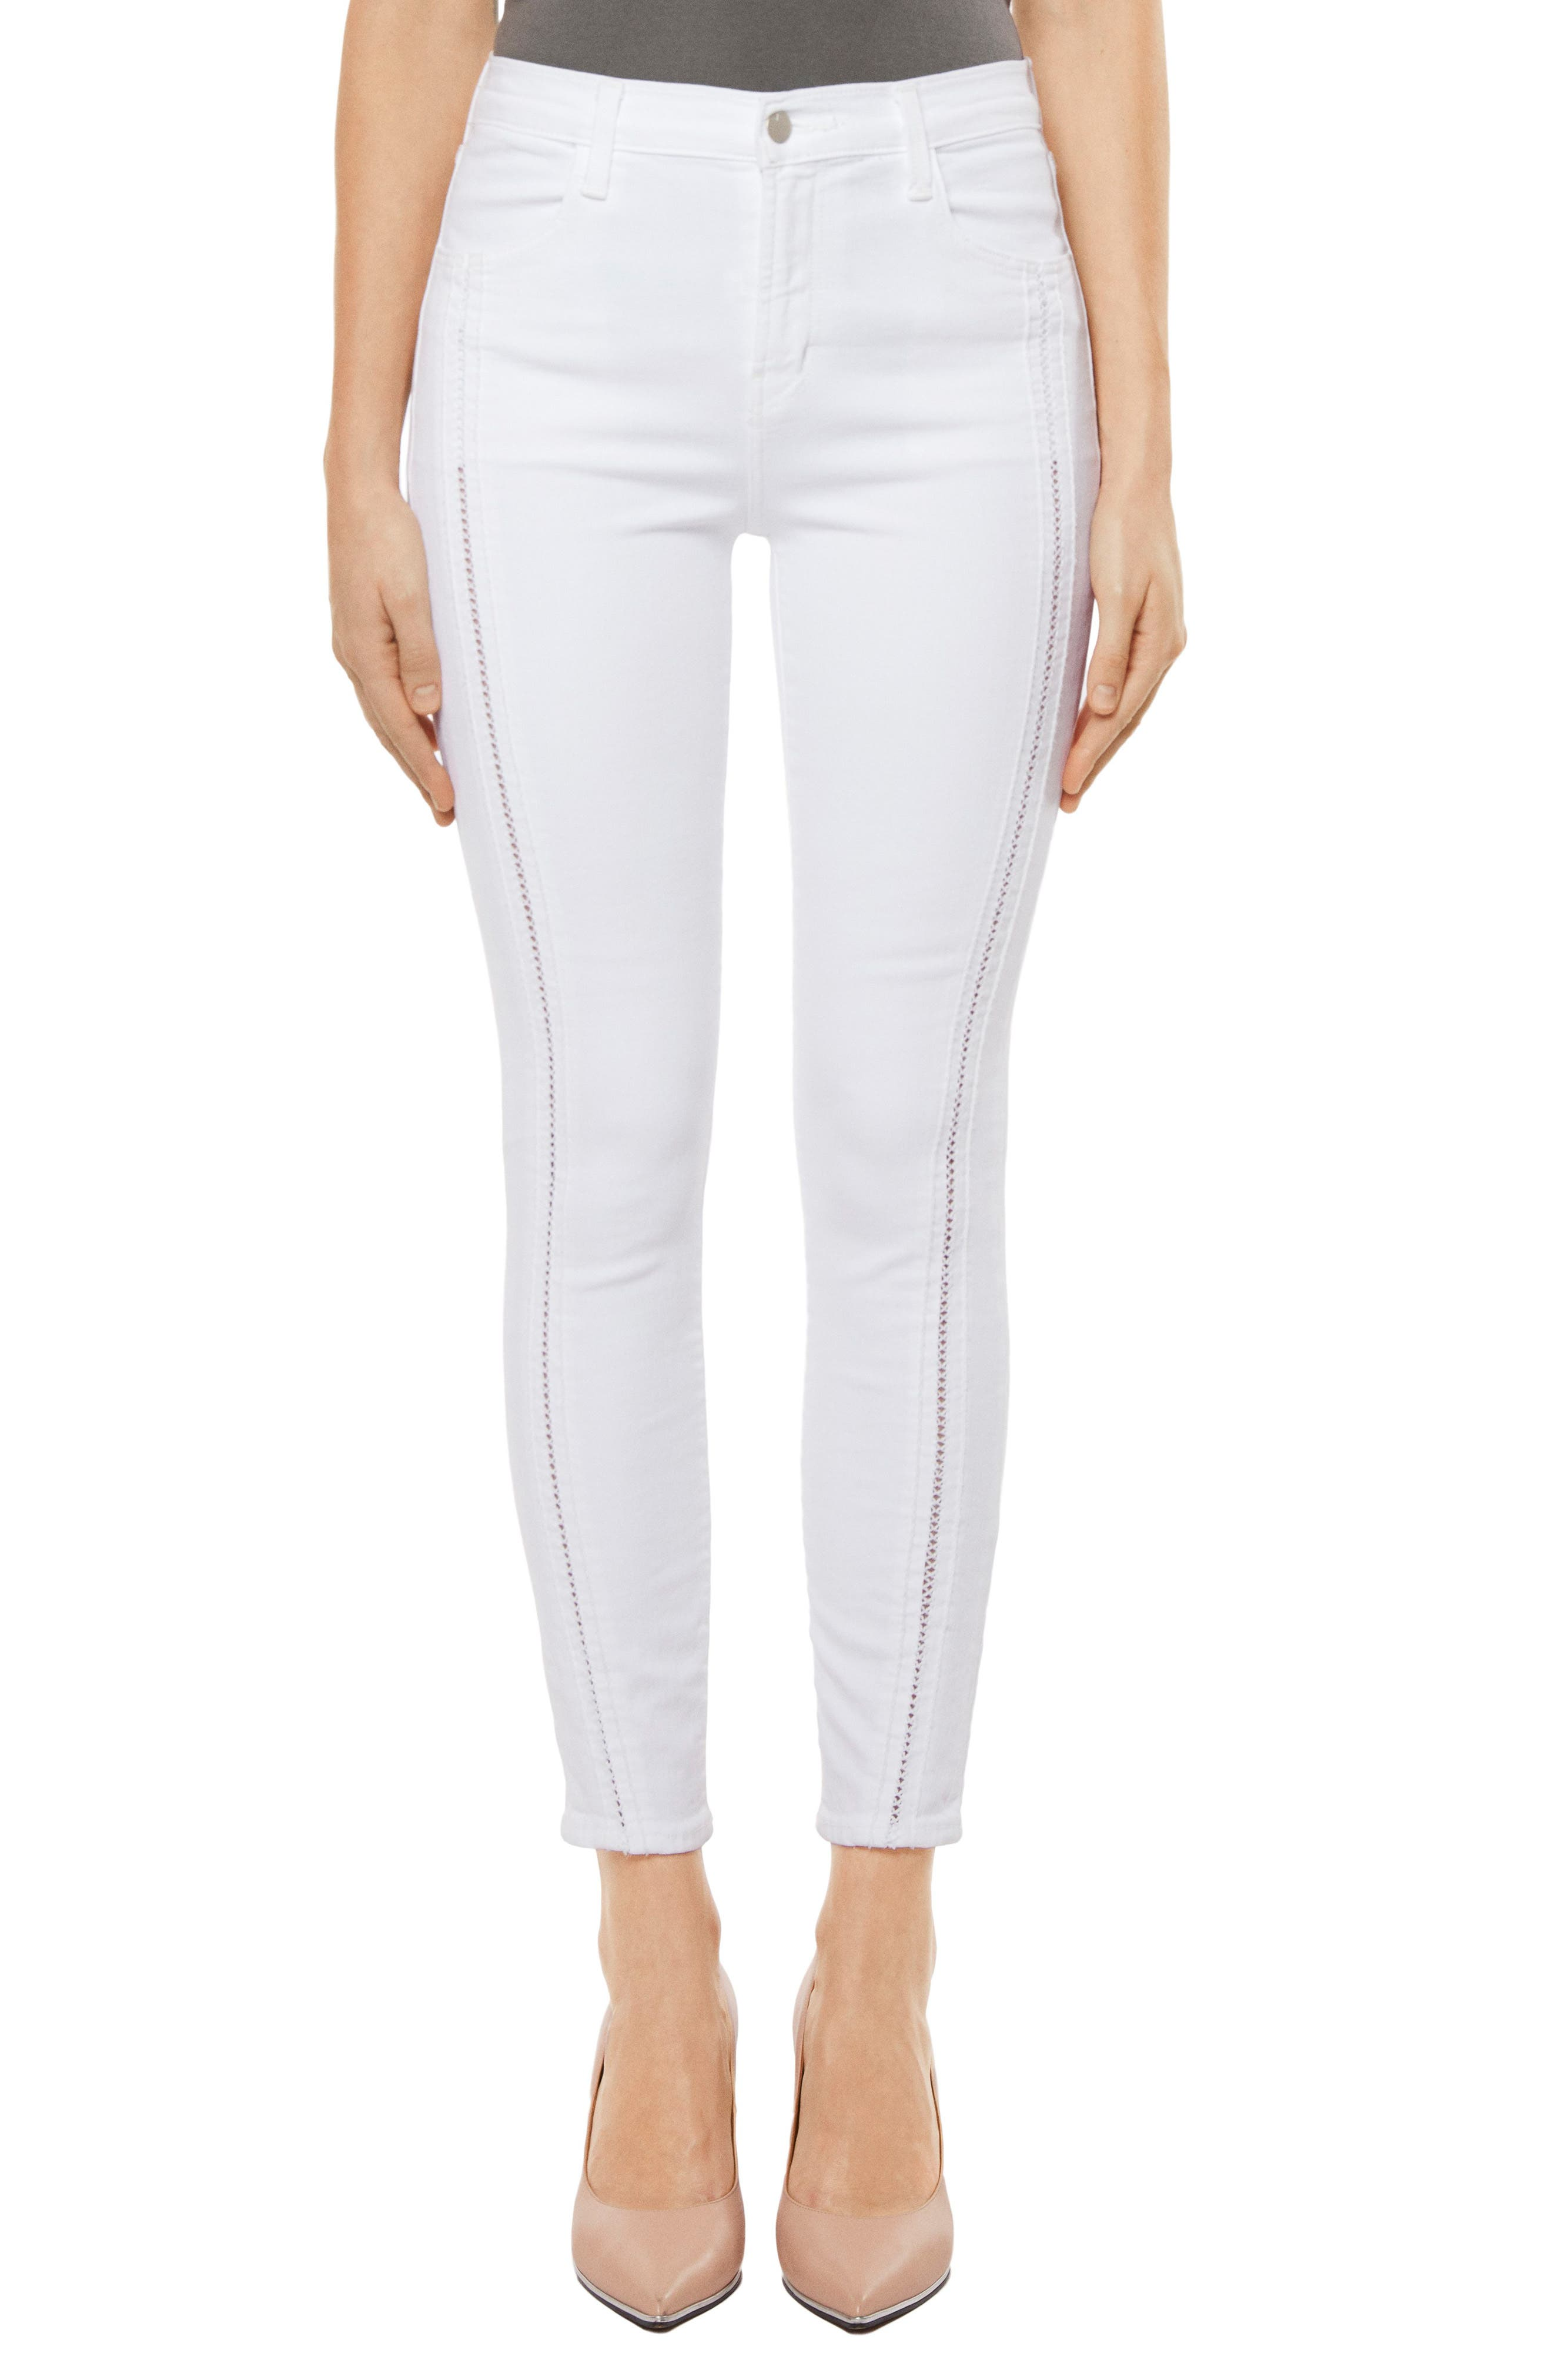 Alana High Waist Crop Skinny Jeans,                         Main,                         color, White Ladder Lace